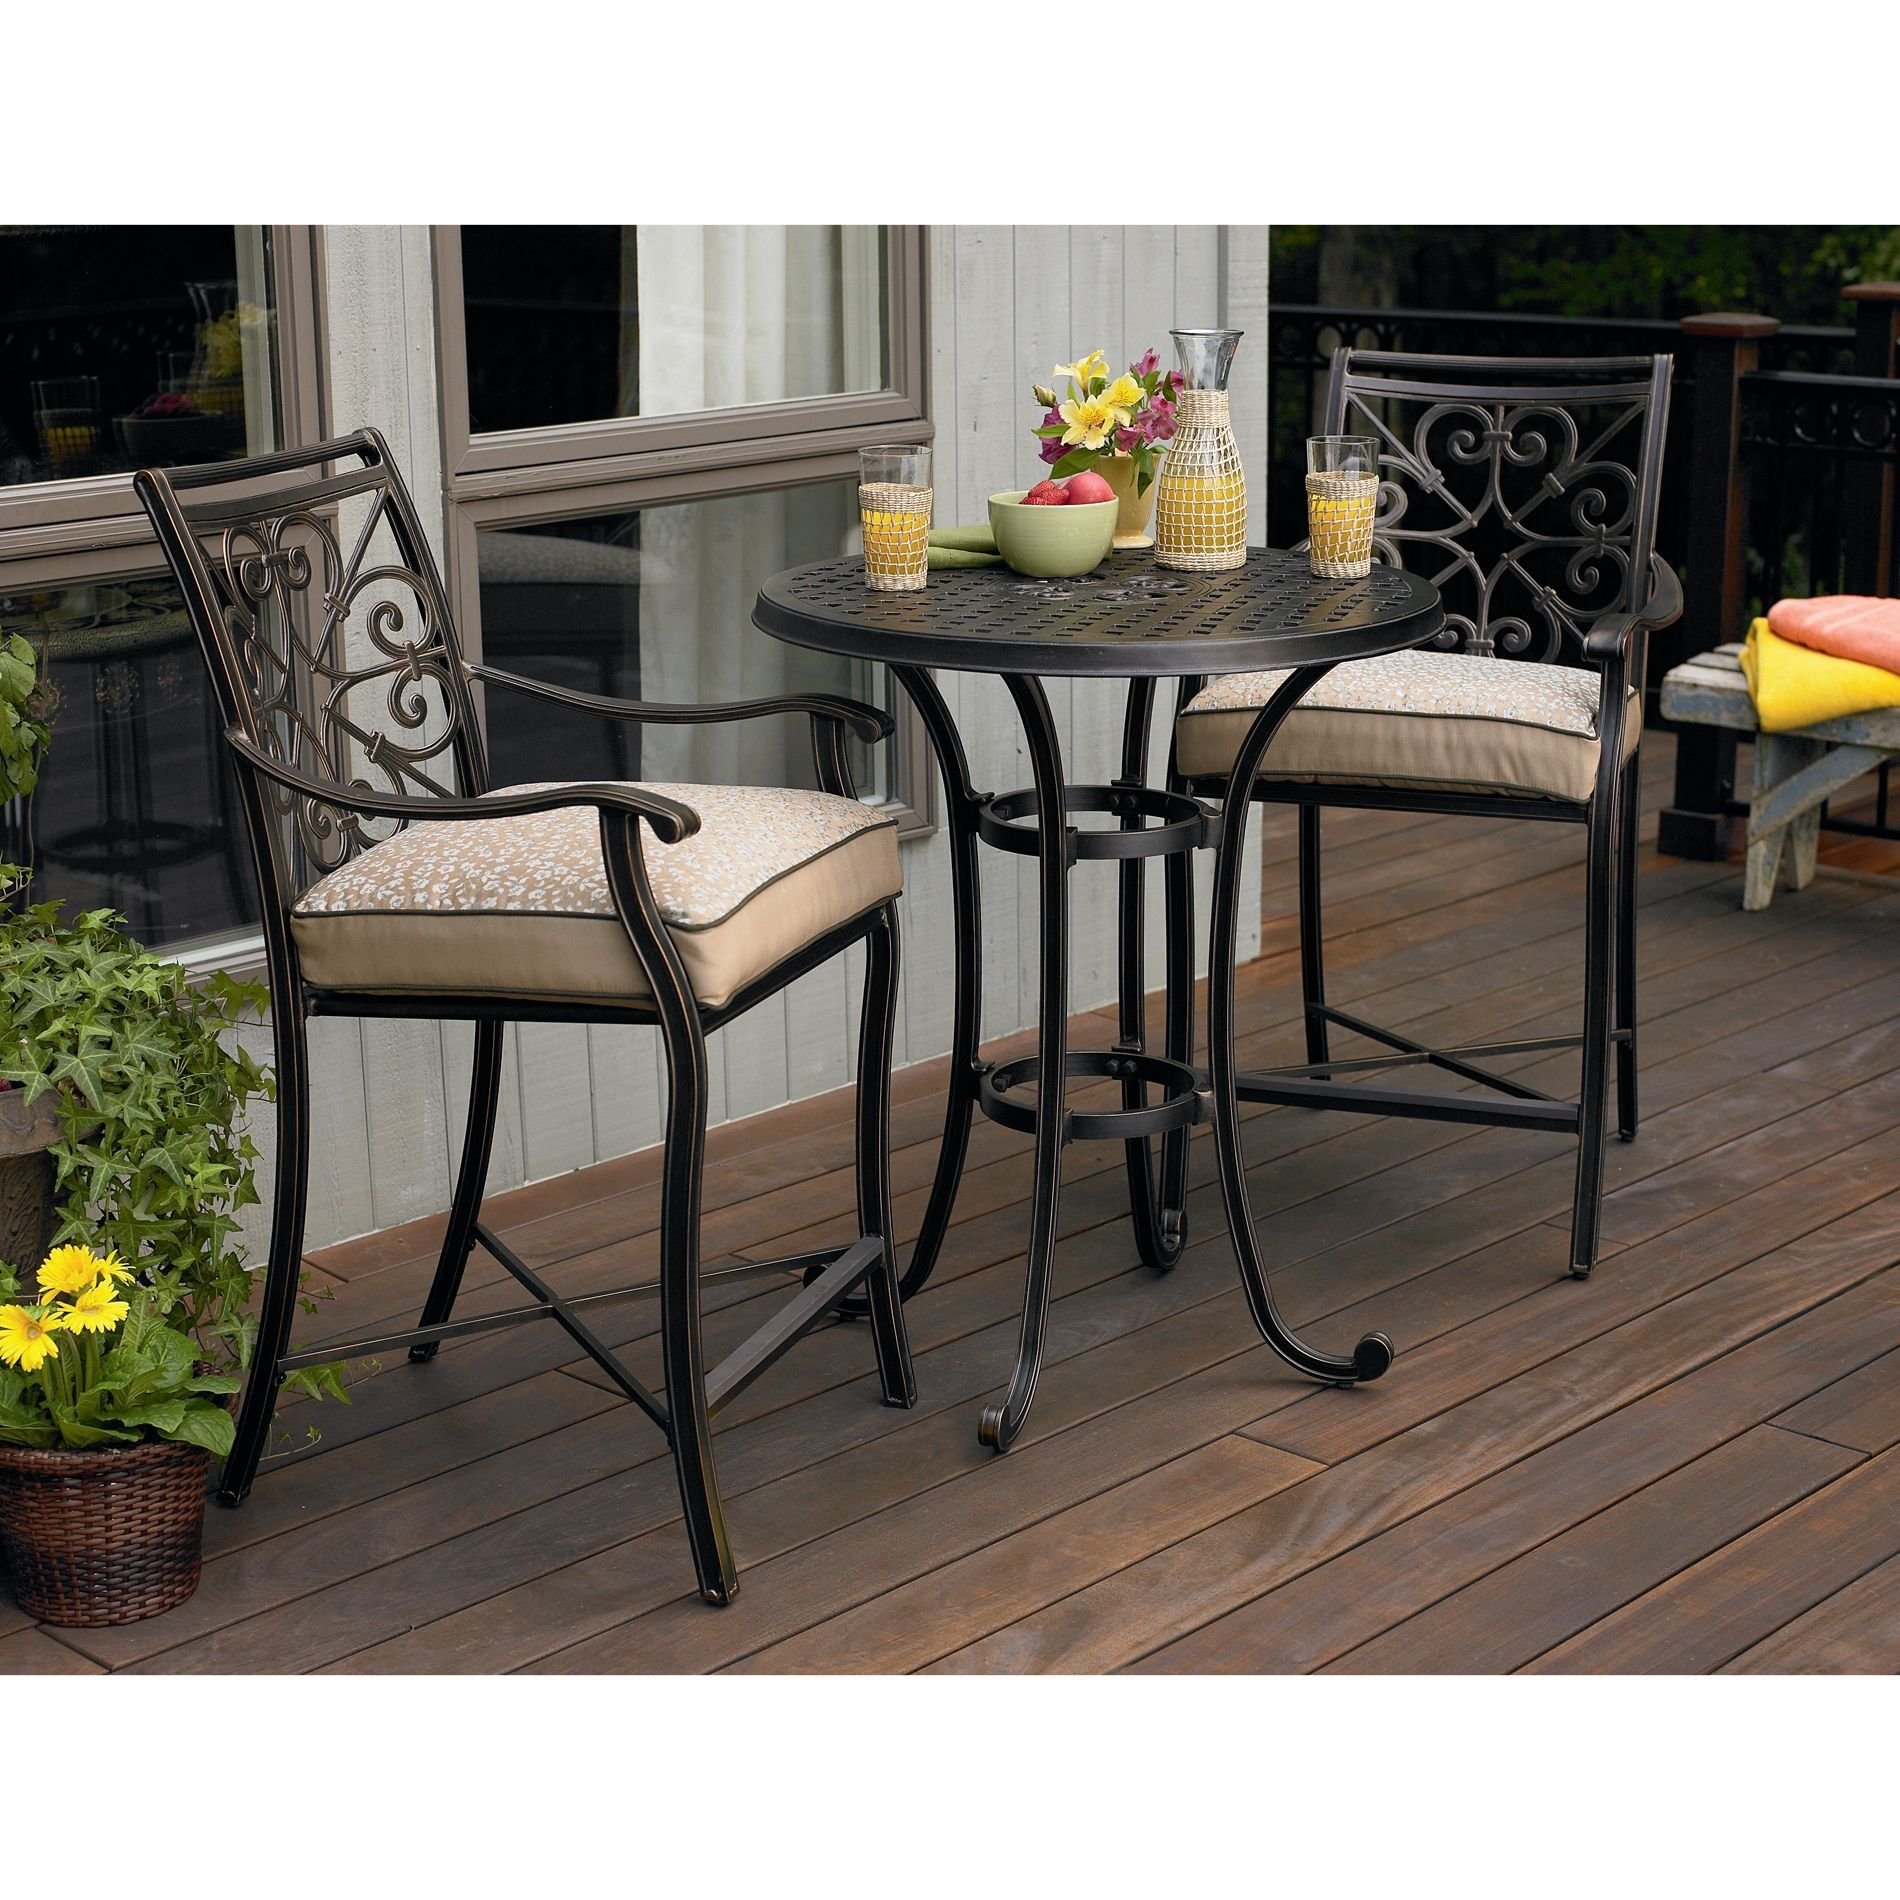 Wrought Iron Glass Top Bistro Table Set | http://lachpage.com ...